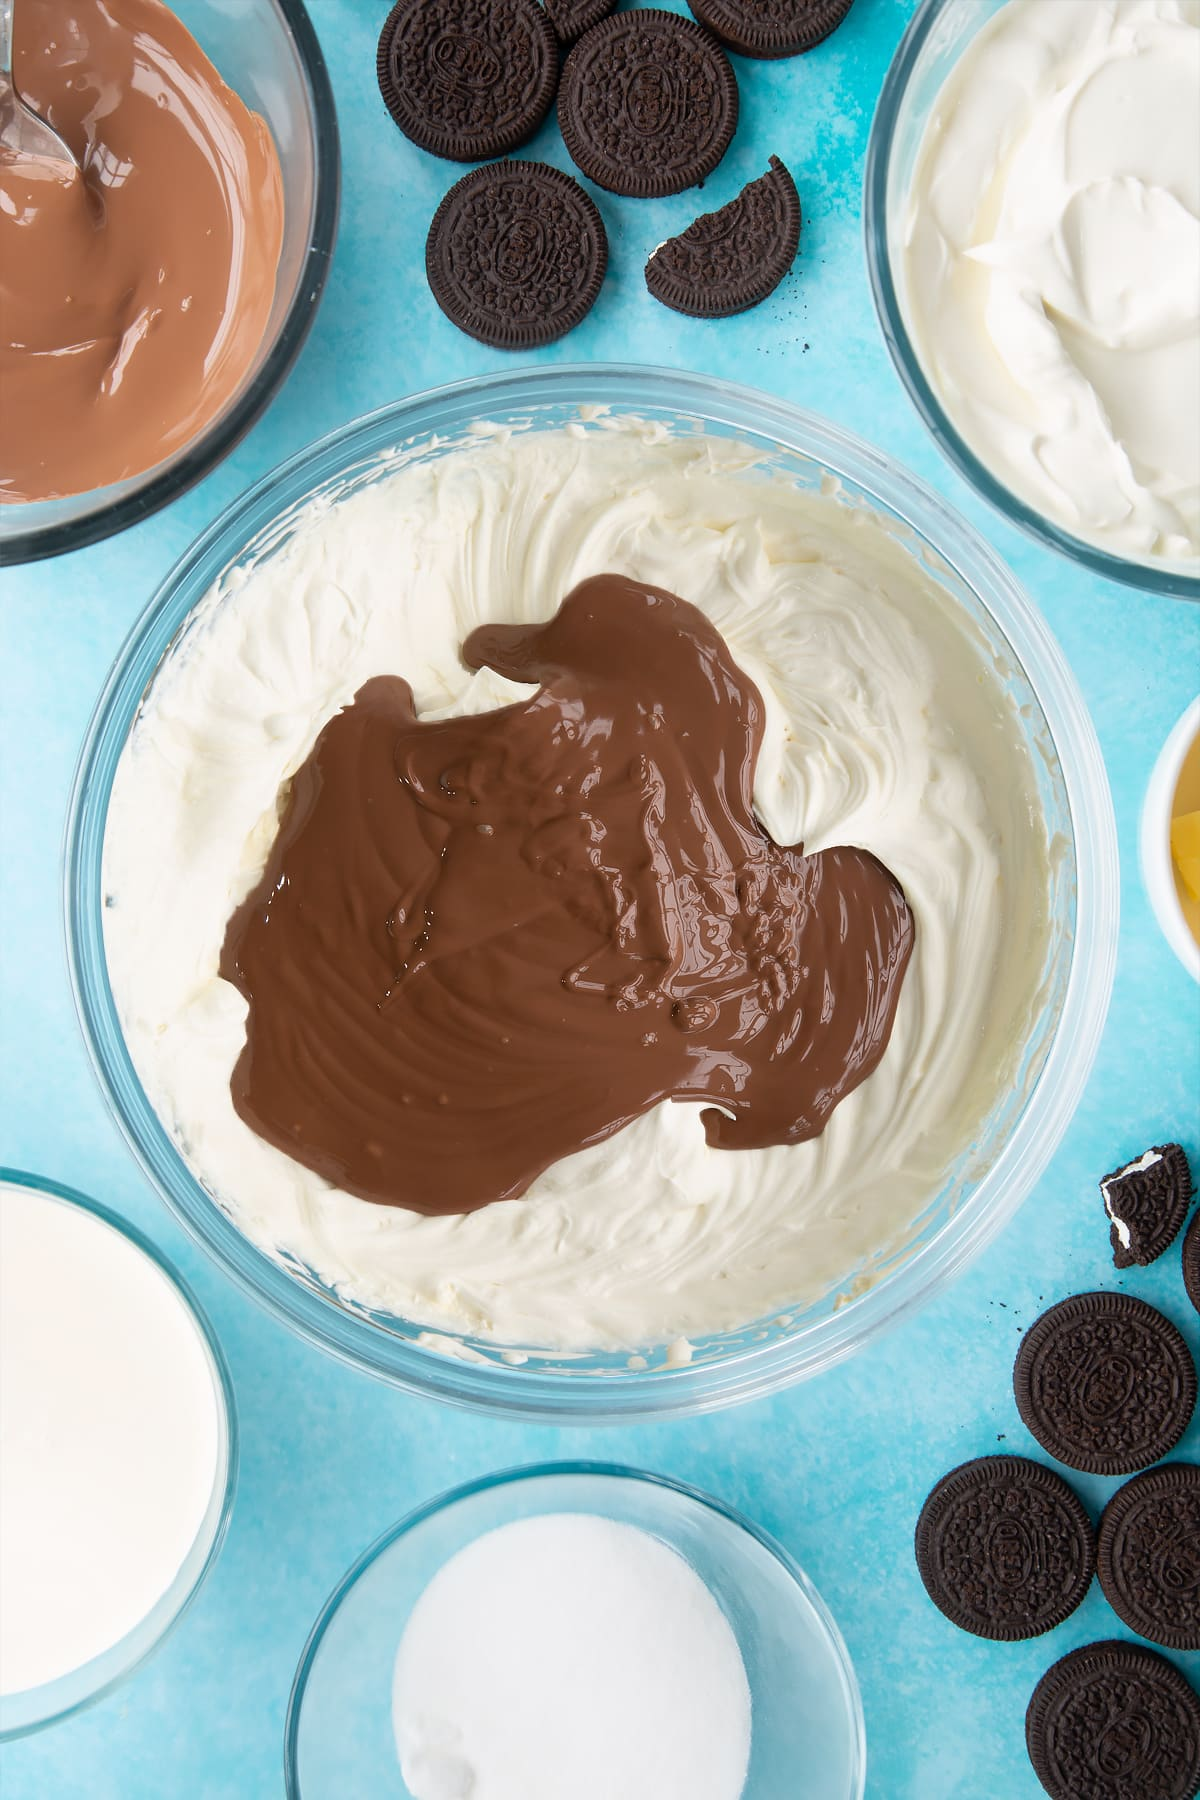 Overhead shot of whipped ingredients with melted chocolate in a large clear bowl